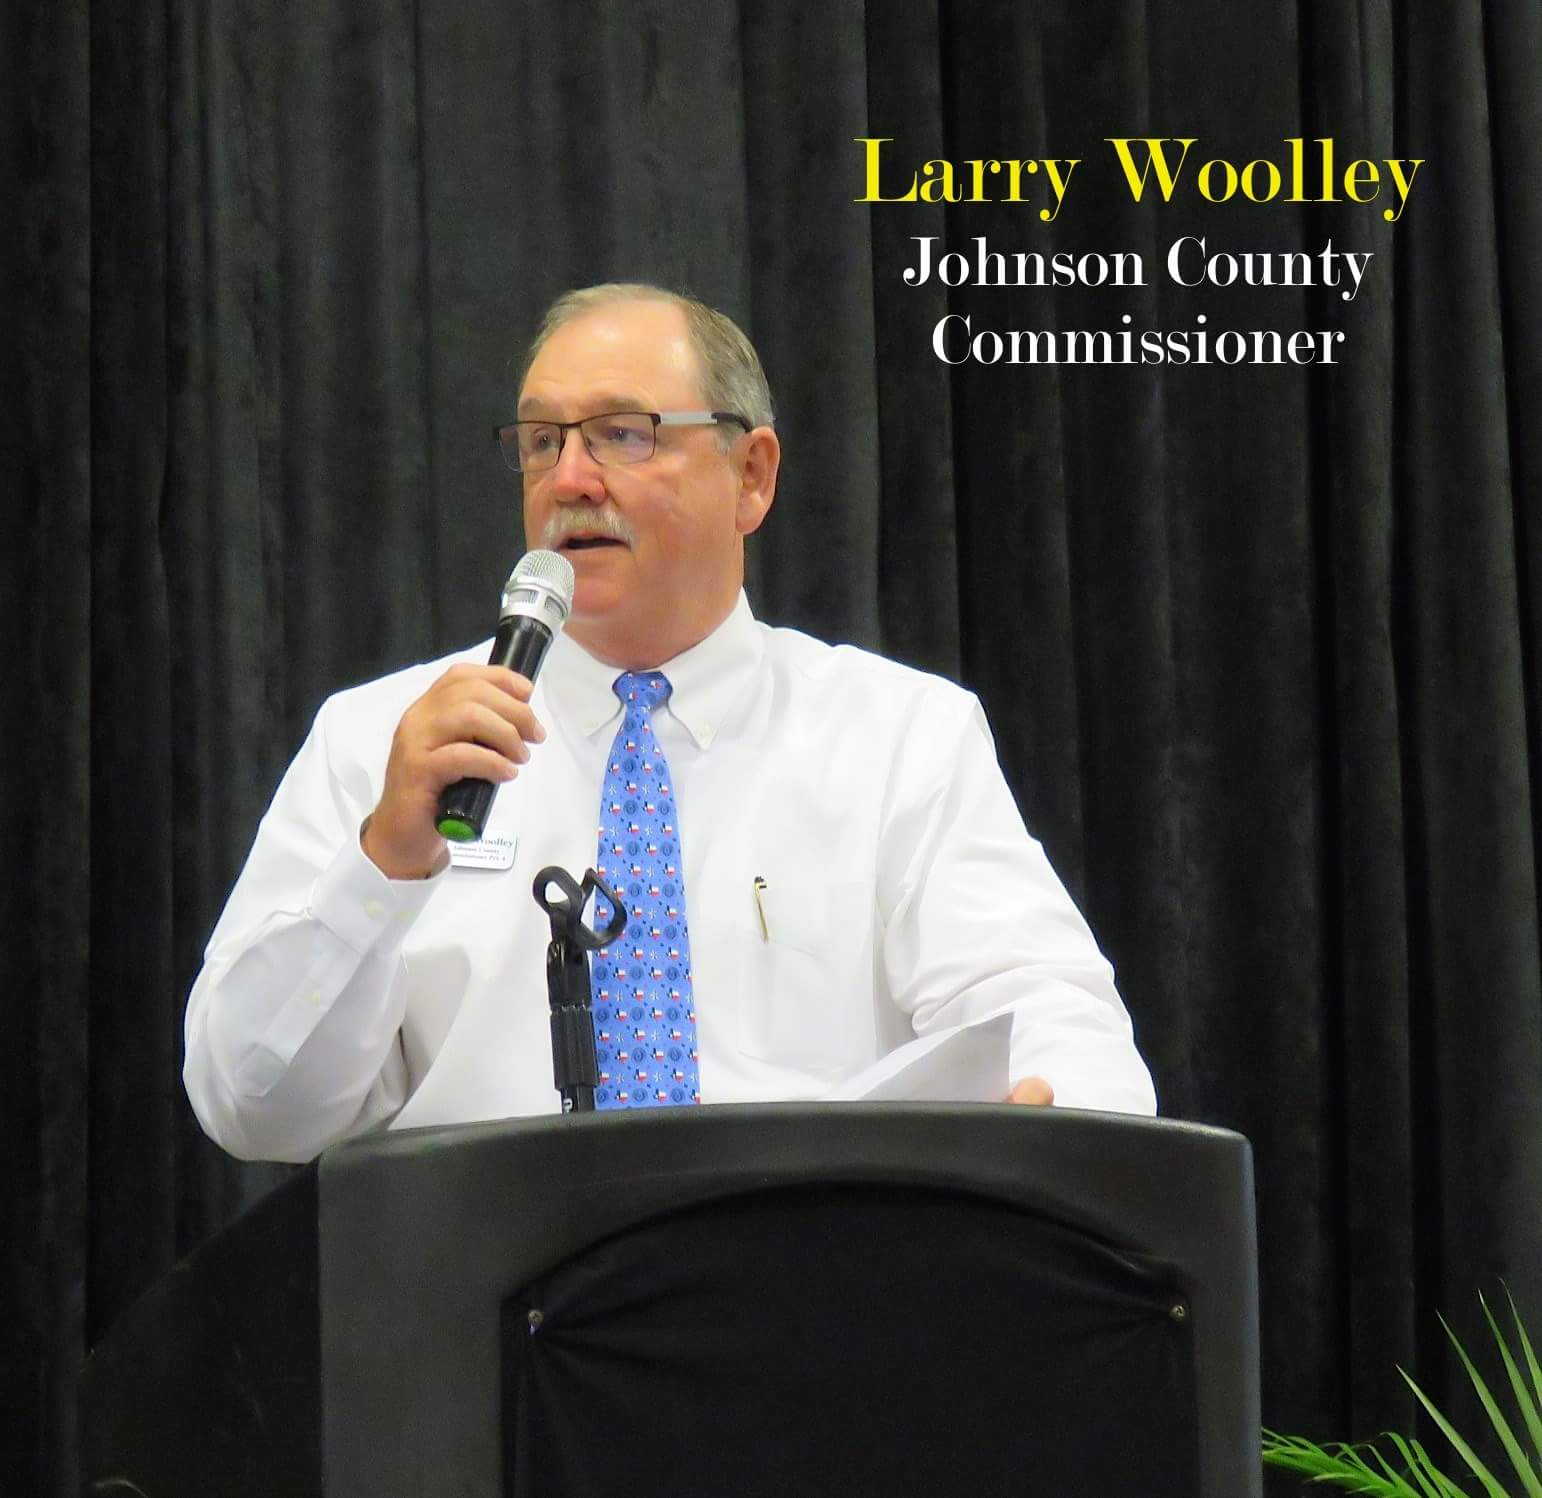 Larry Woolley, Commissioner Johnson County Precinct 4